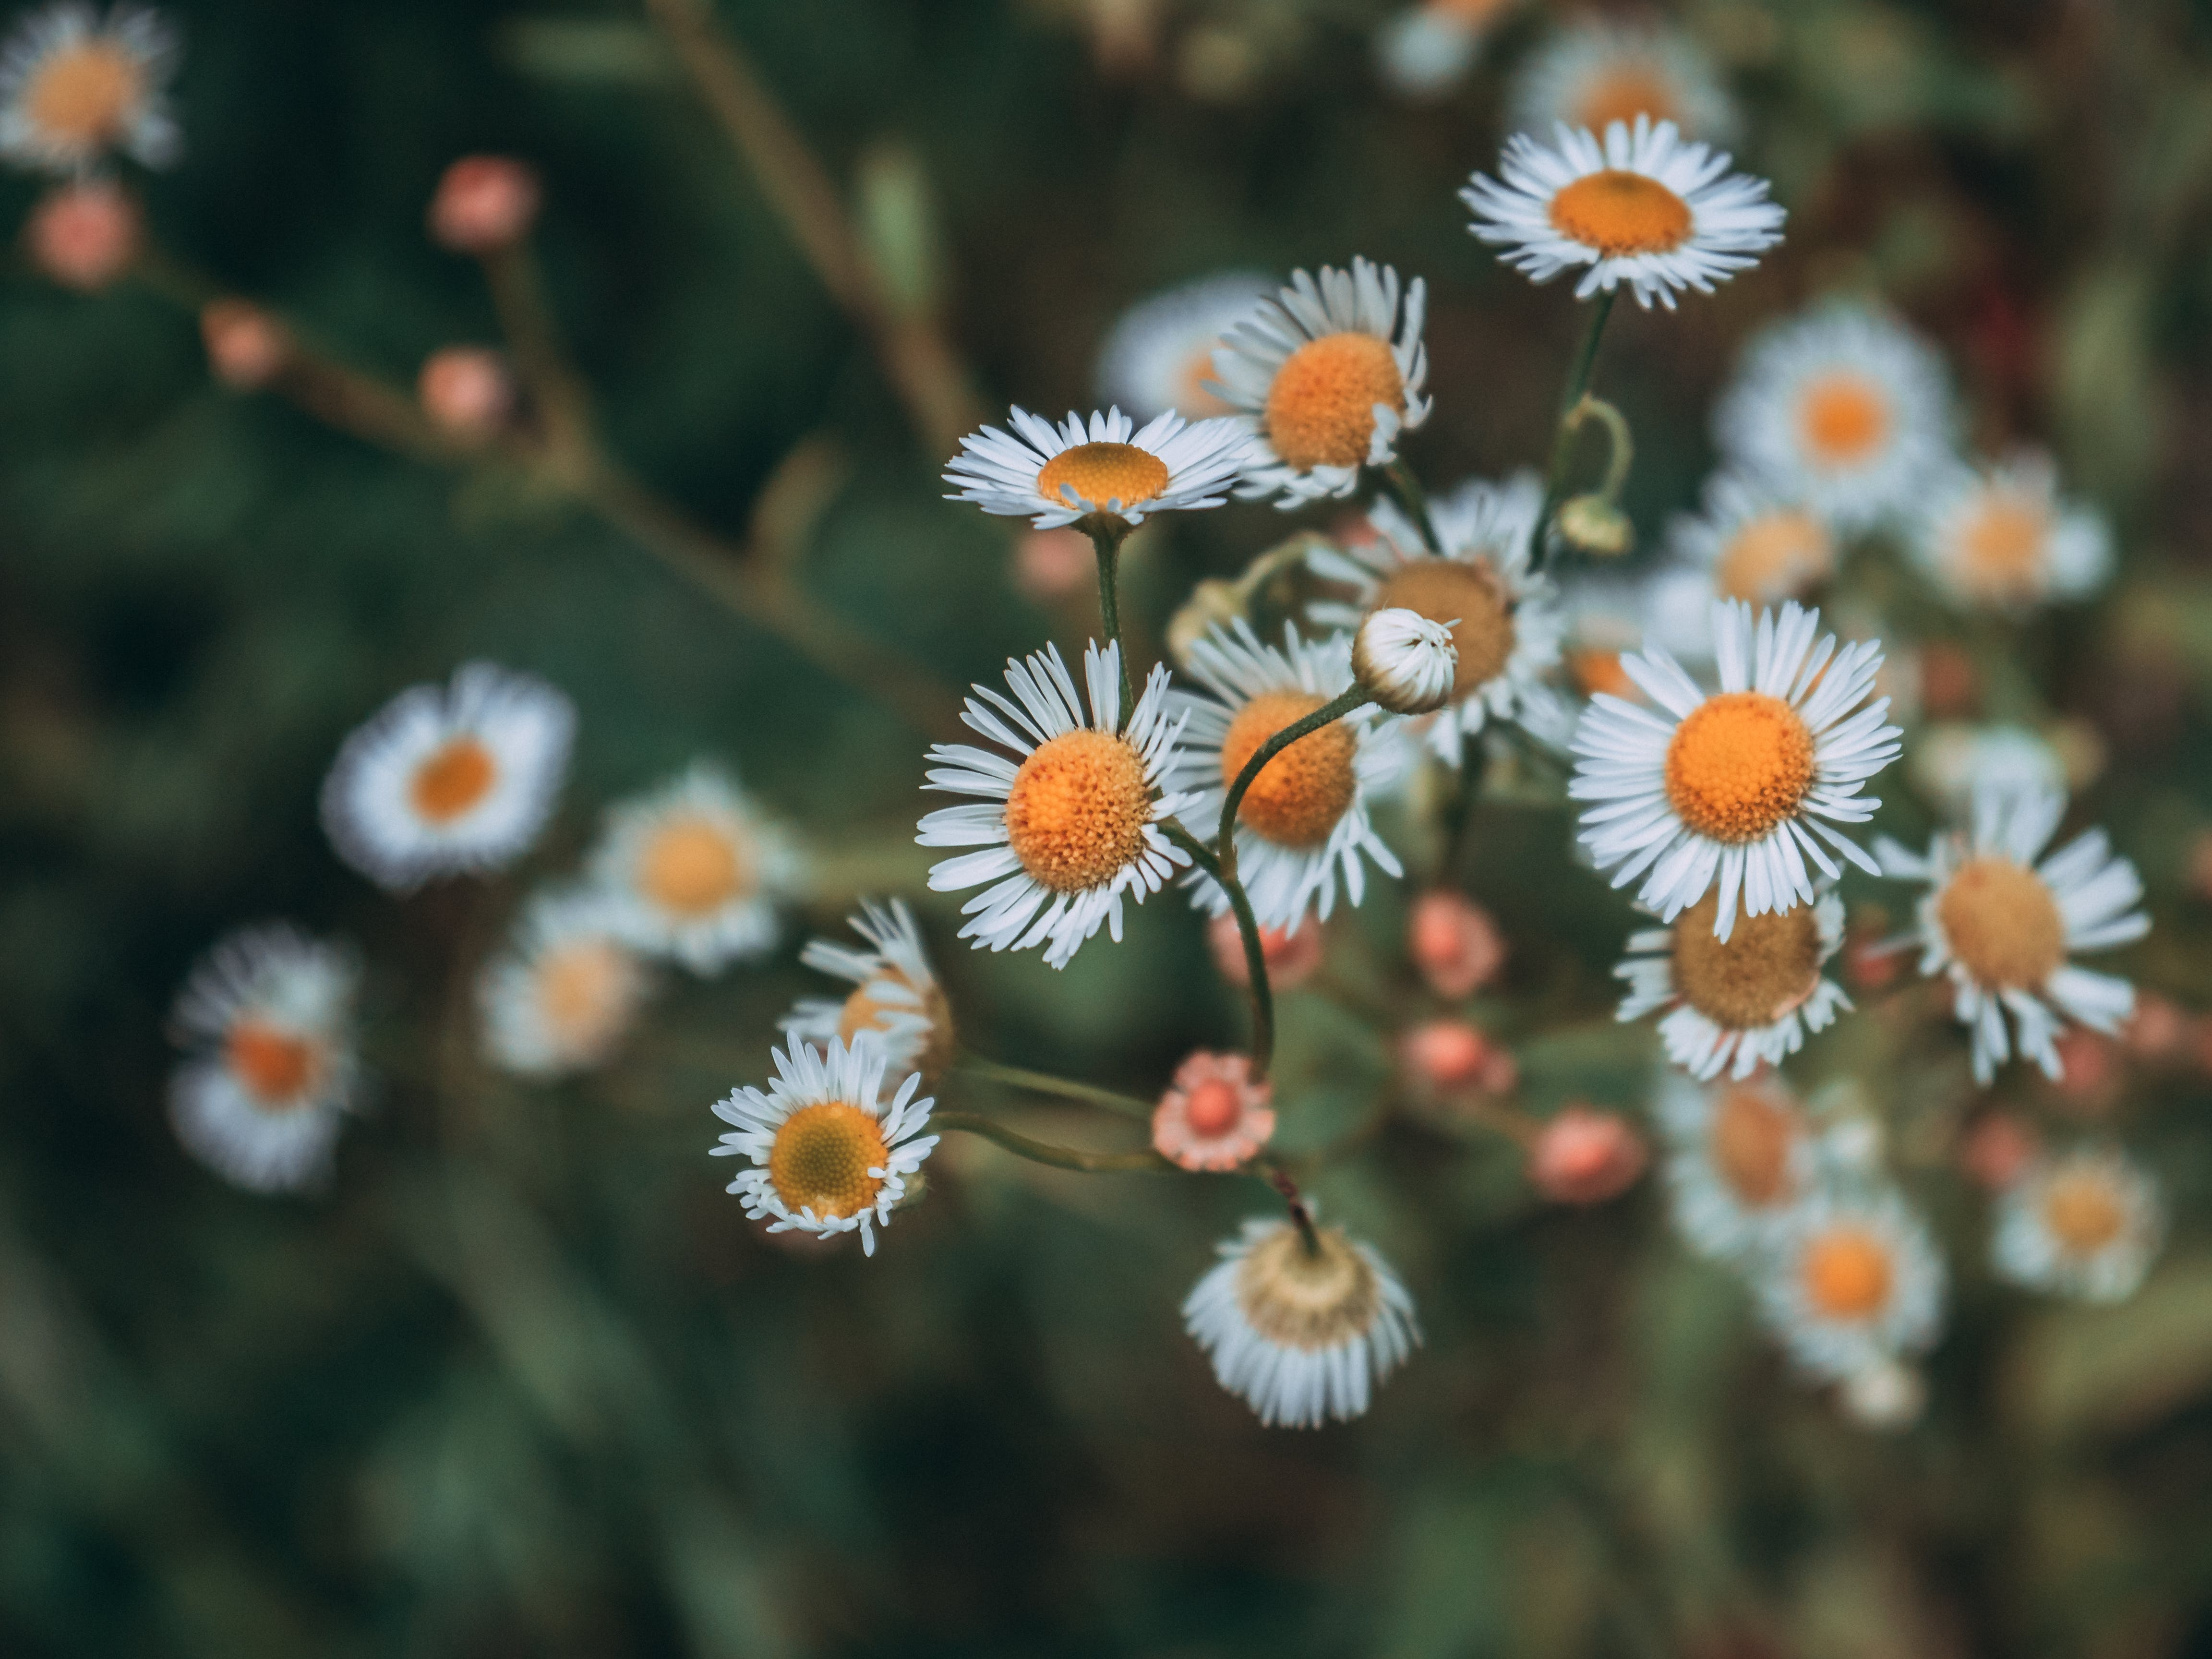 Selective Focus Photography of White-and-orange Petaled Flower Plant